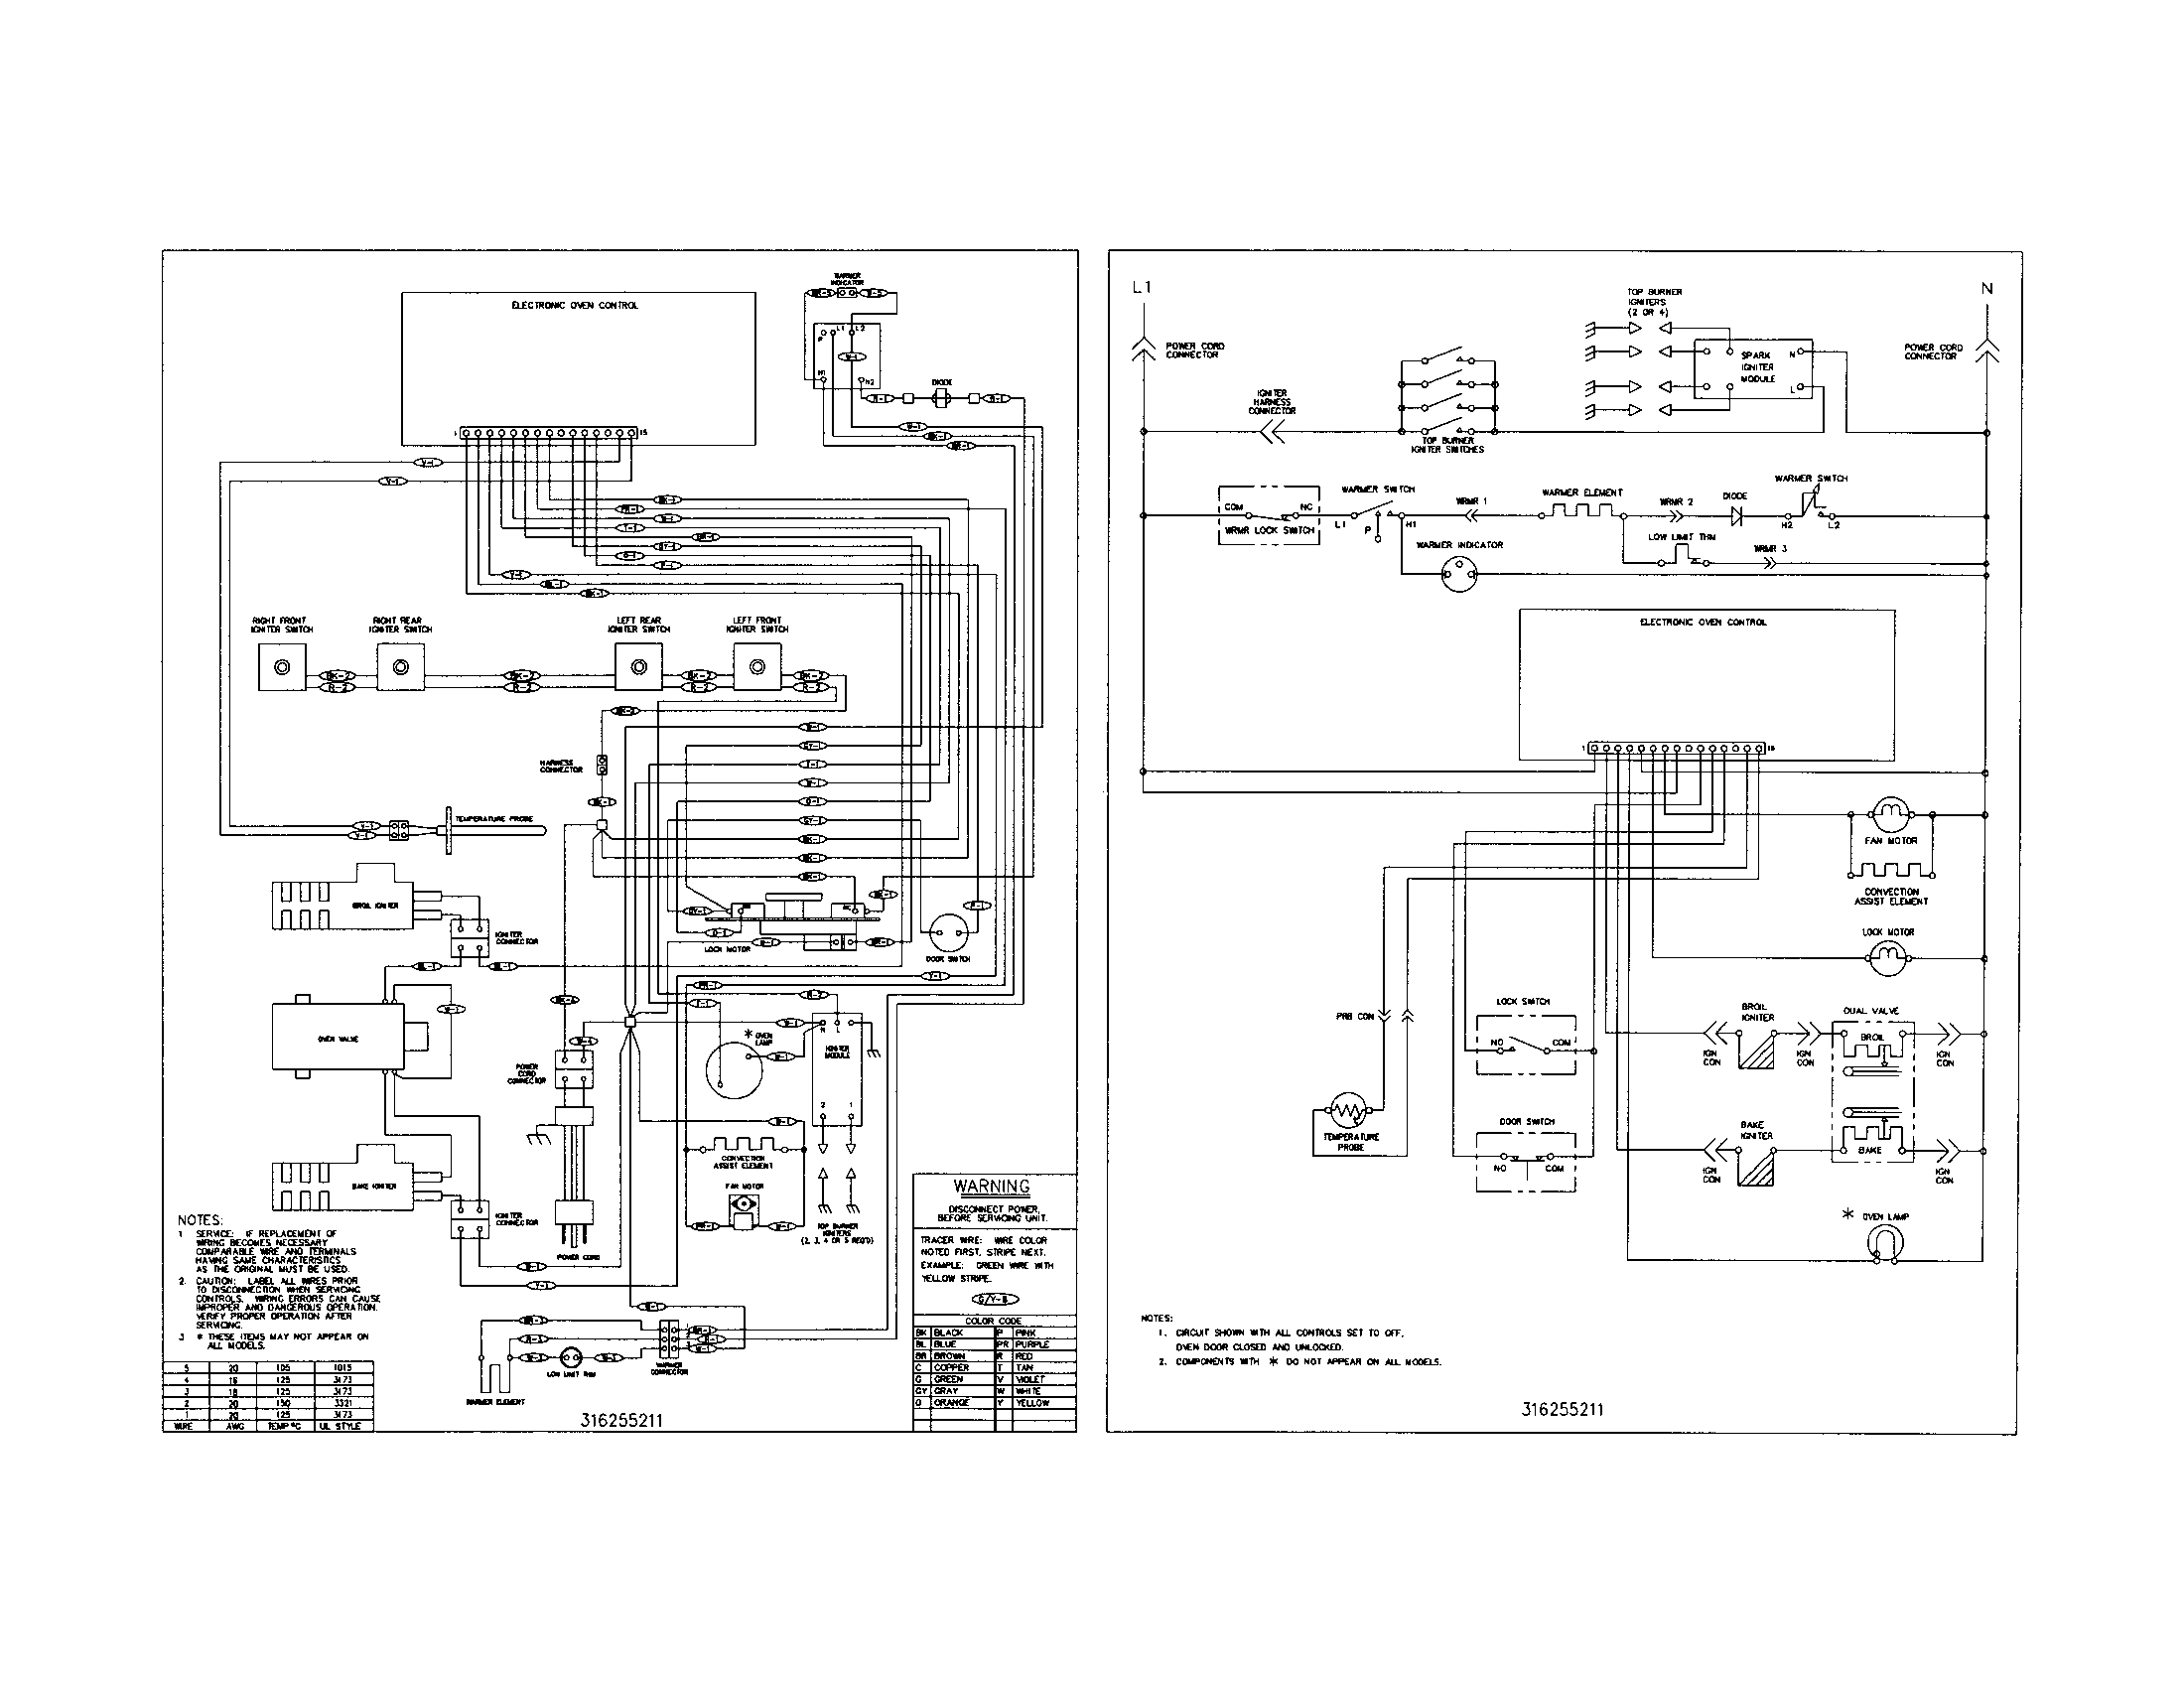 Dryer Wiring Diagram Further Kenmore Dryer Wiring Diagram On Wiring